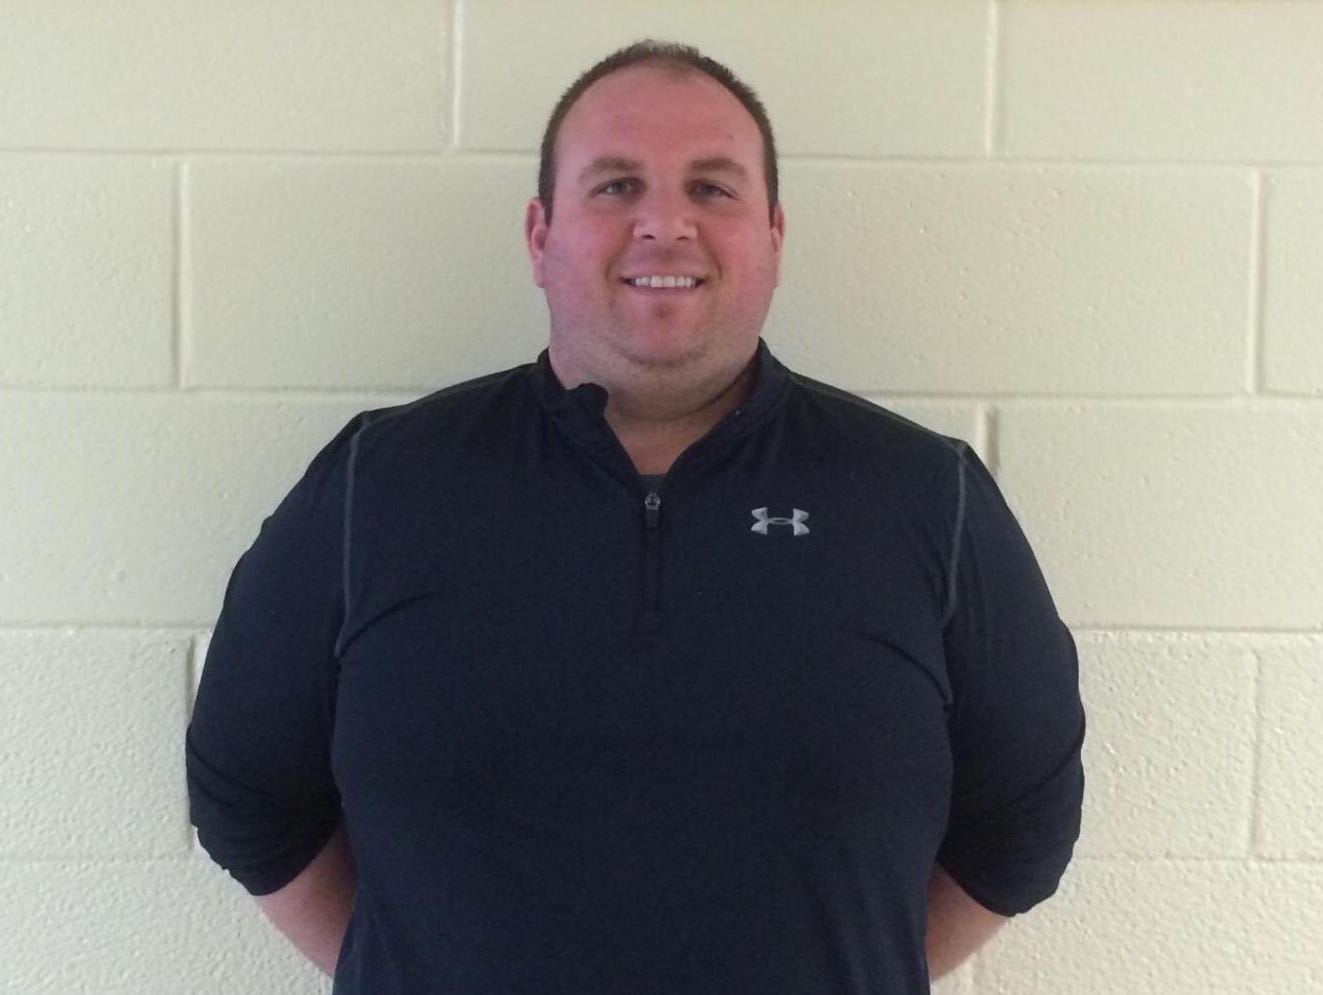 White Plains hired Mike Lindberg, a Clarkstown South grad and former Lourdes and Arlington coach, as its new head football coach.